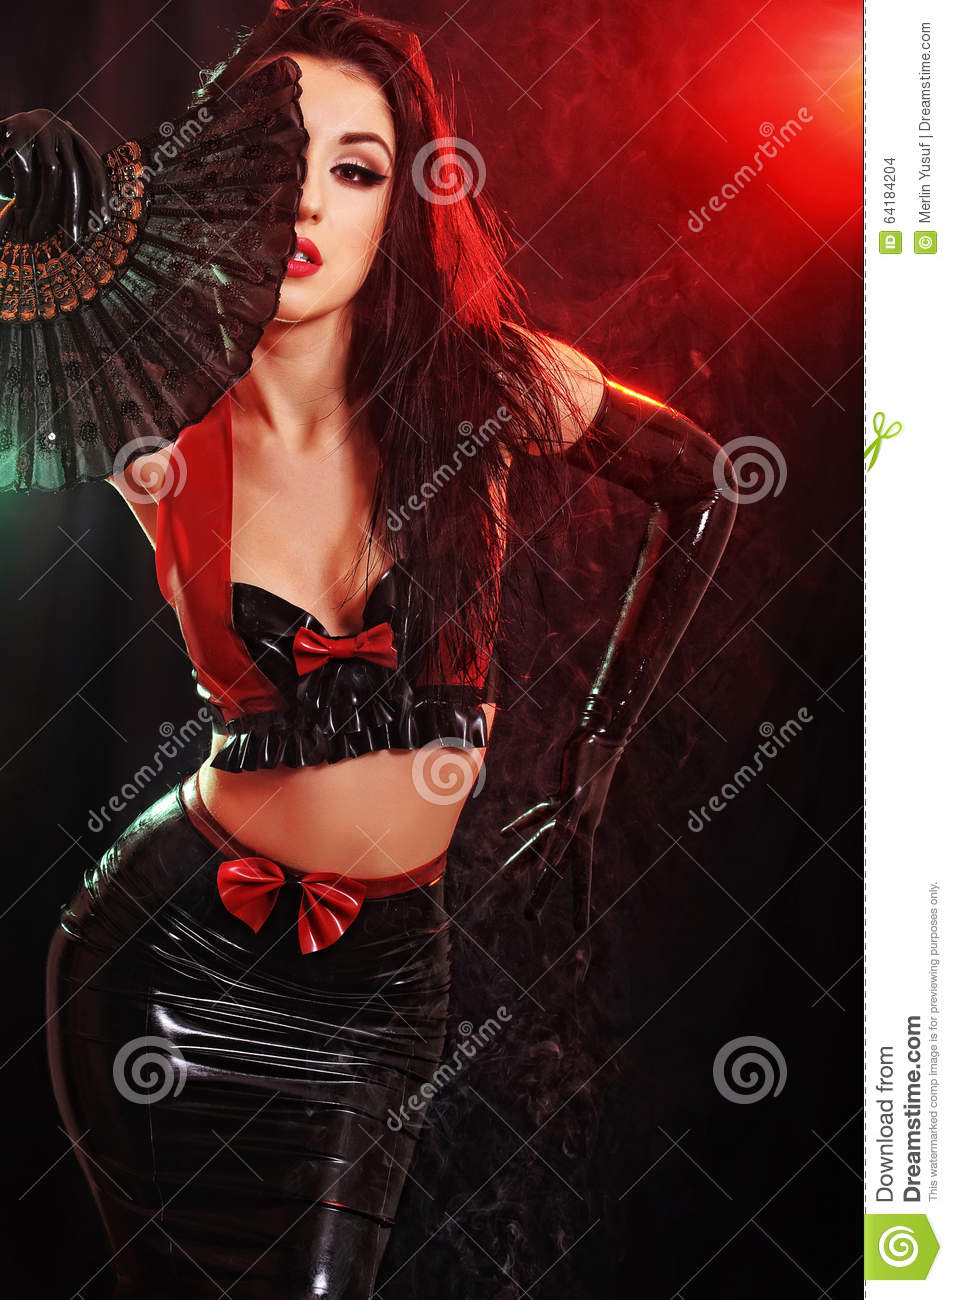 model wearing latex outfit and gloves